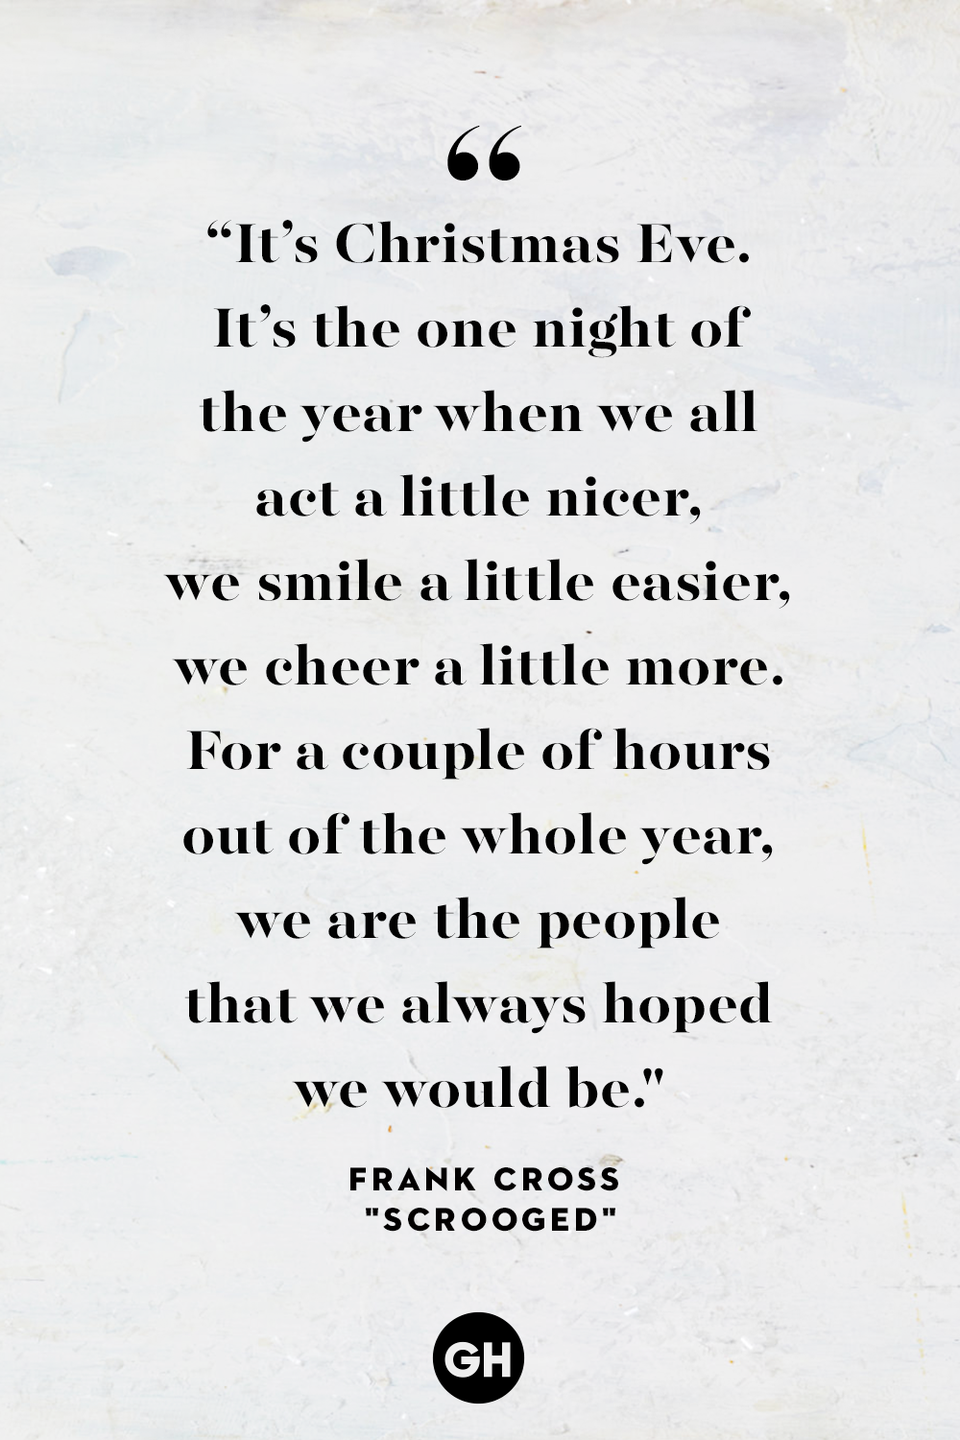 <p>It's Christmas Eve. It's the one night of the year when we all act a little nicer, we smile a little easier, we cheer a little more. For a couple of hours out of the whole year, we are the people that we always hoped we would be. </p>